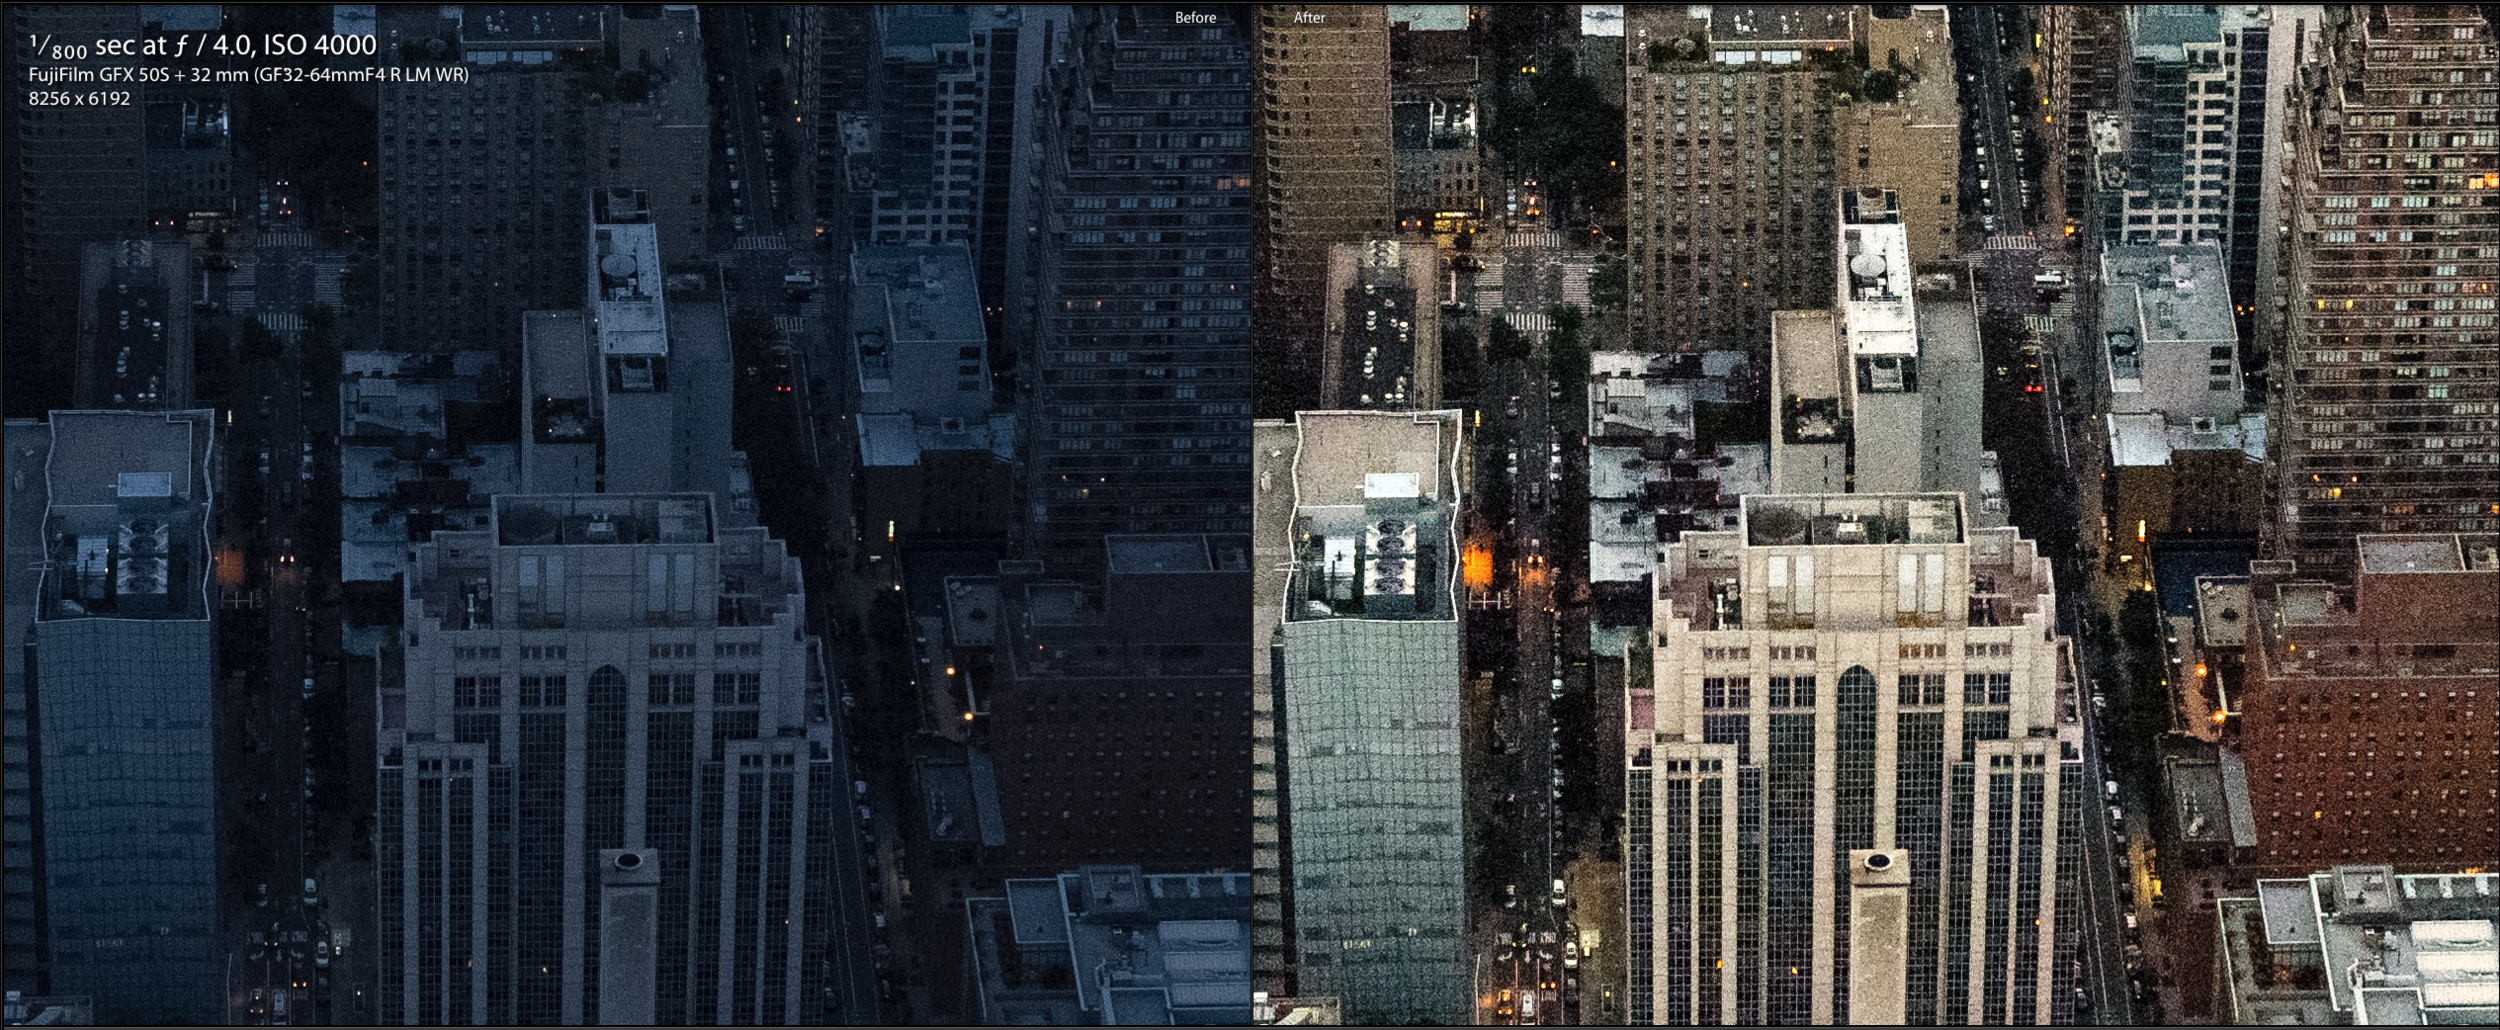 Same 'before & after' at 100% zoom. (Click to enlarge)